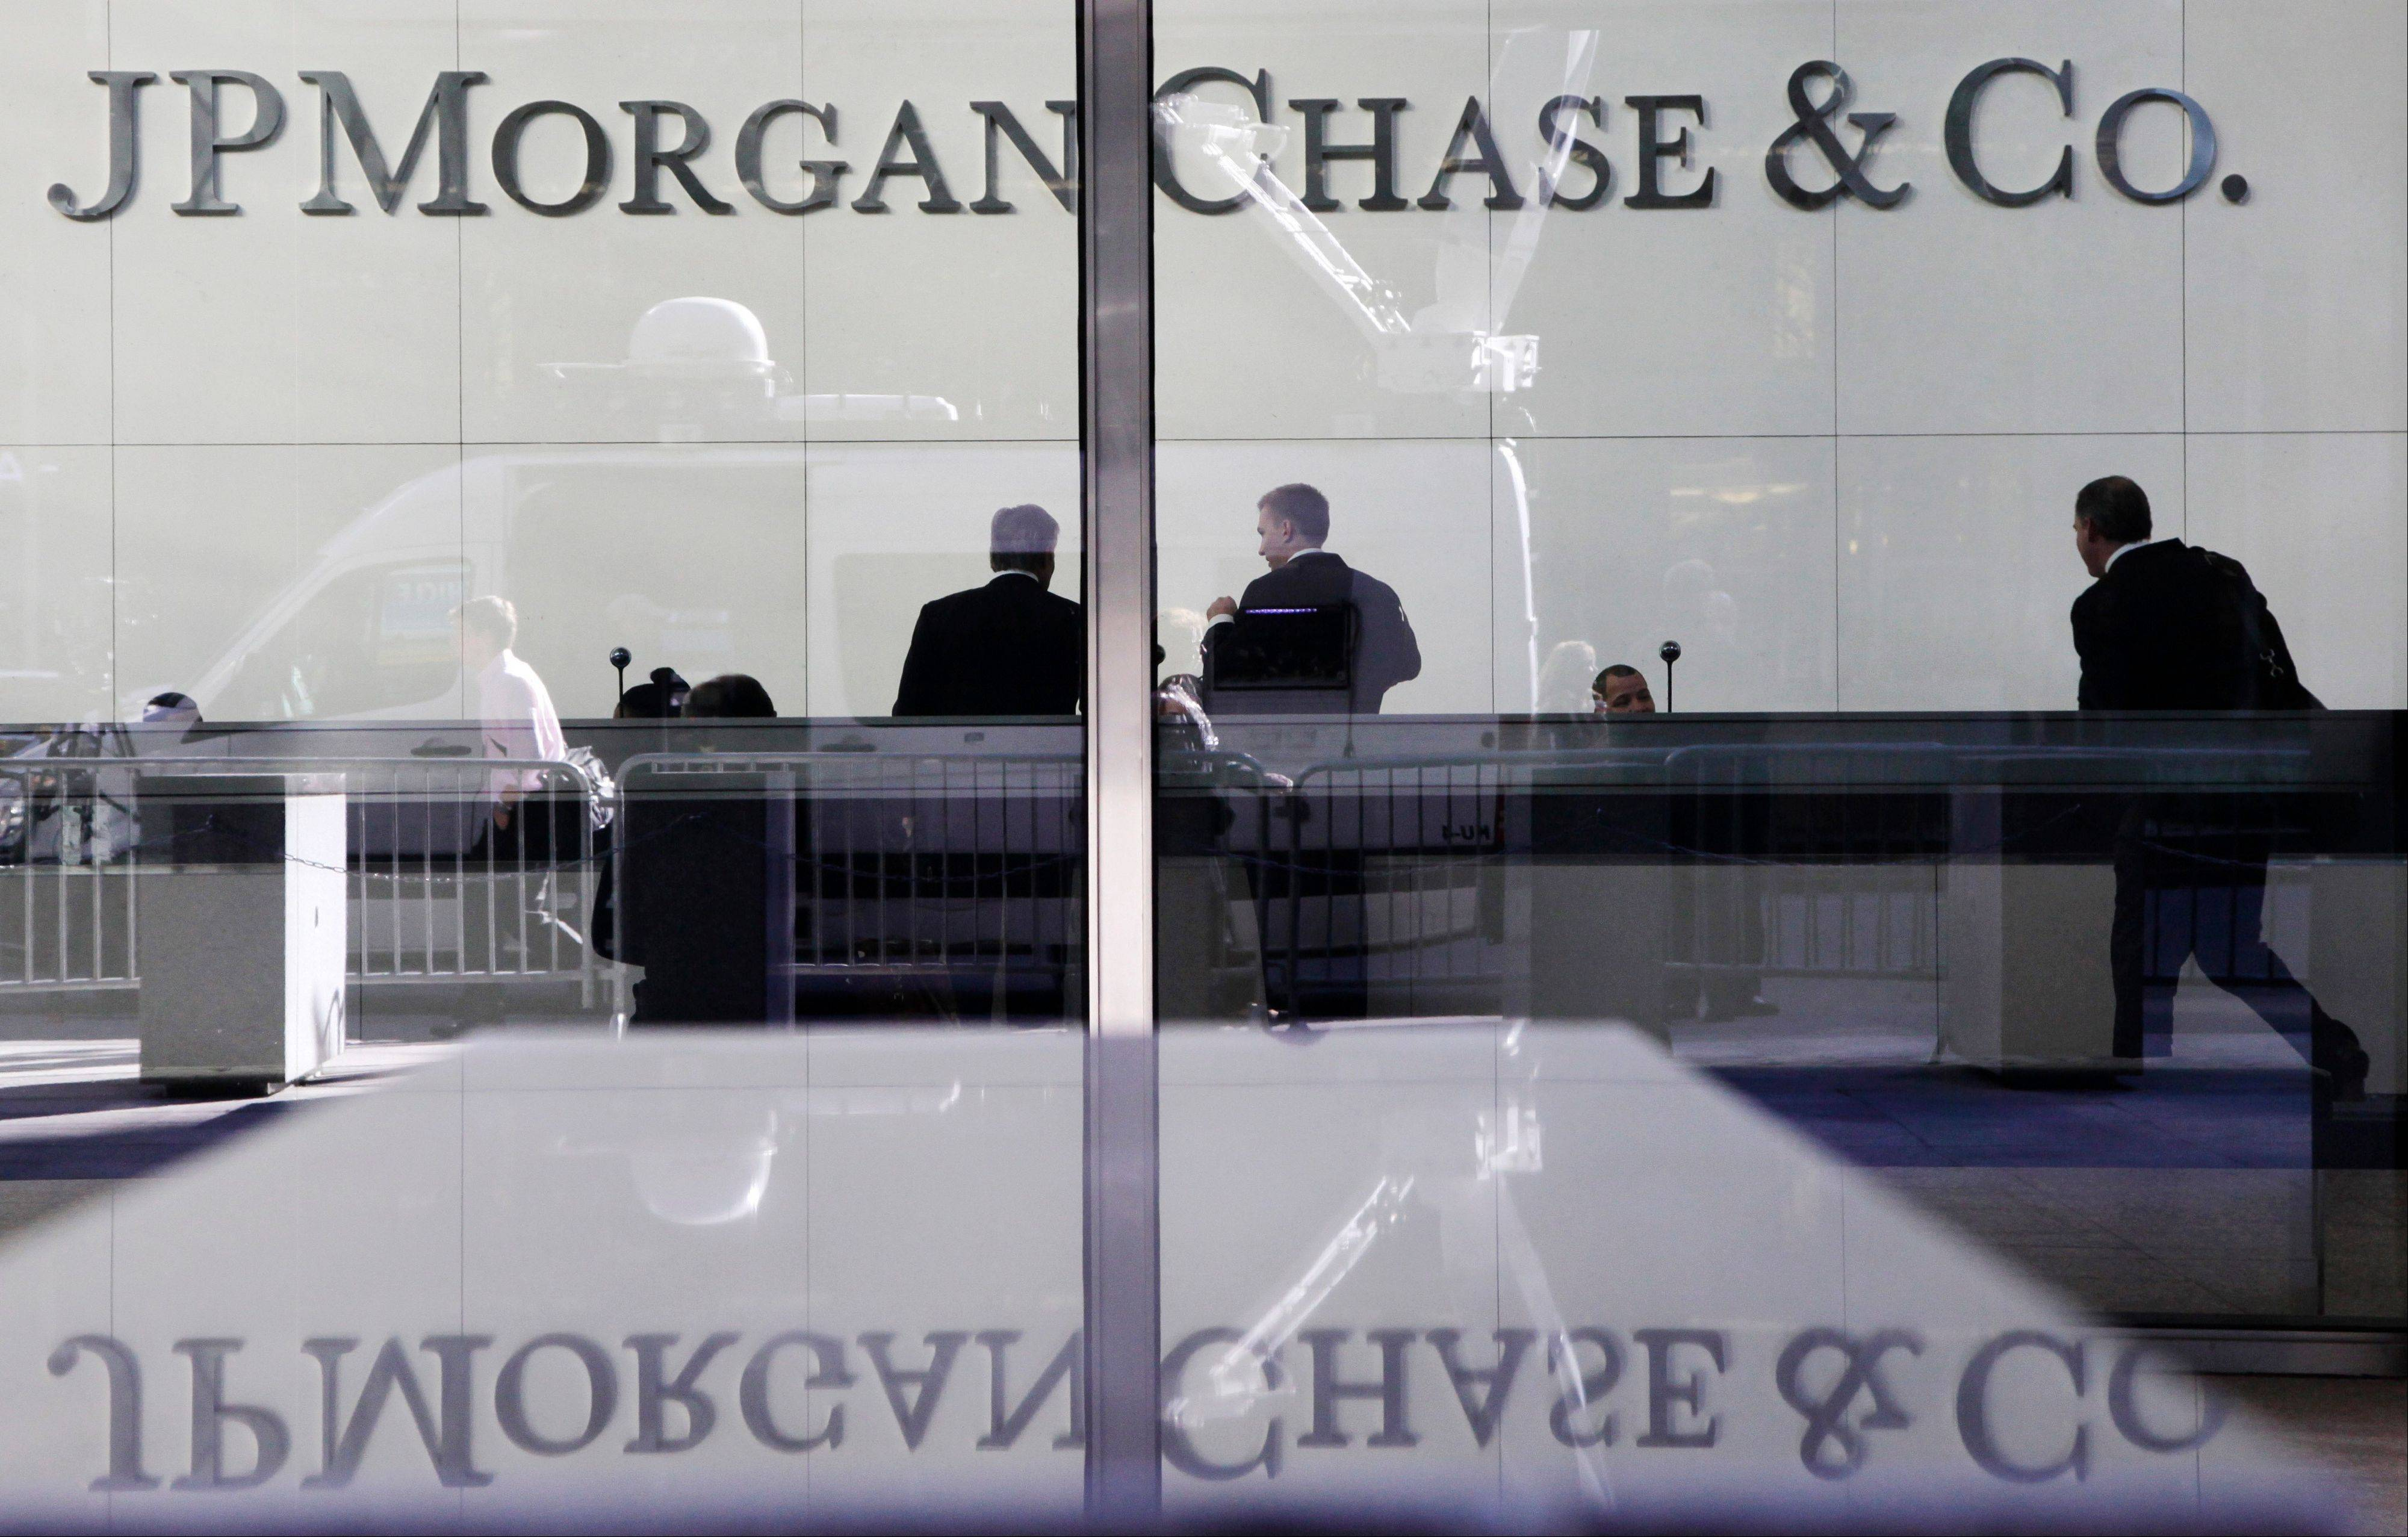 JPMorgan Chase & Co., already beset by other costly legal woes, has agreed to pay $1.7 billion to settle criminal charges accusing the bank of ignoring obvious warning signs of Bernard Madoff's massive Ponzi scheme, federal authorities said Tuesday, Jan. 7, 2014.